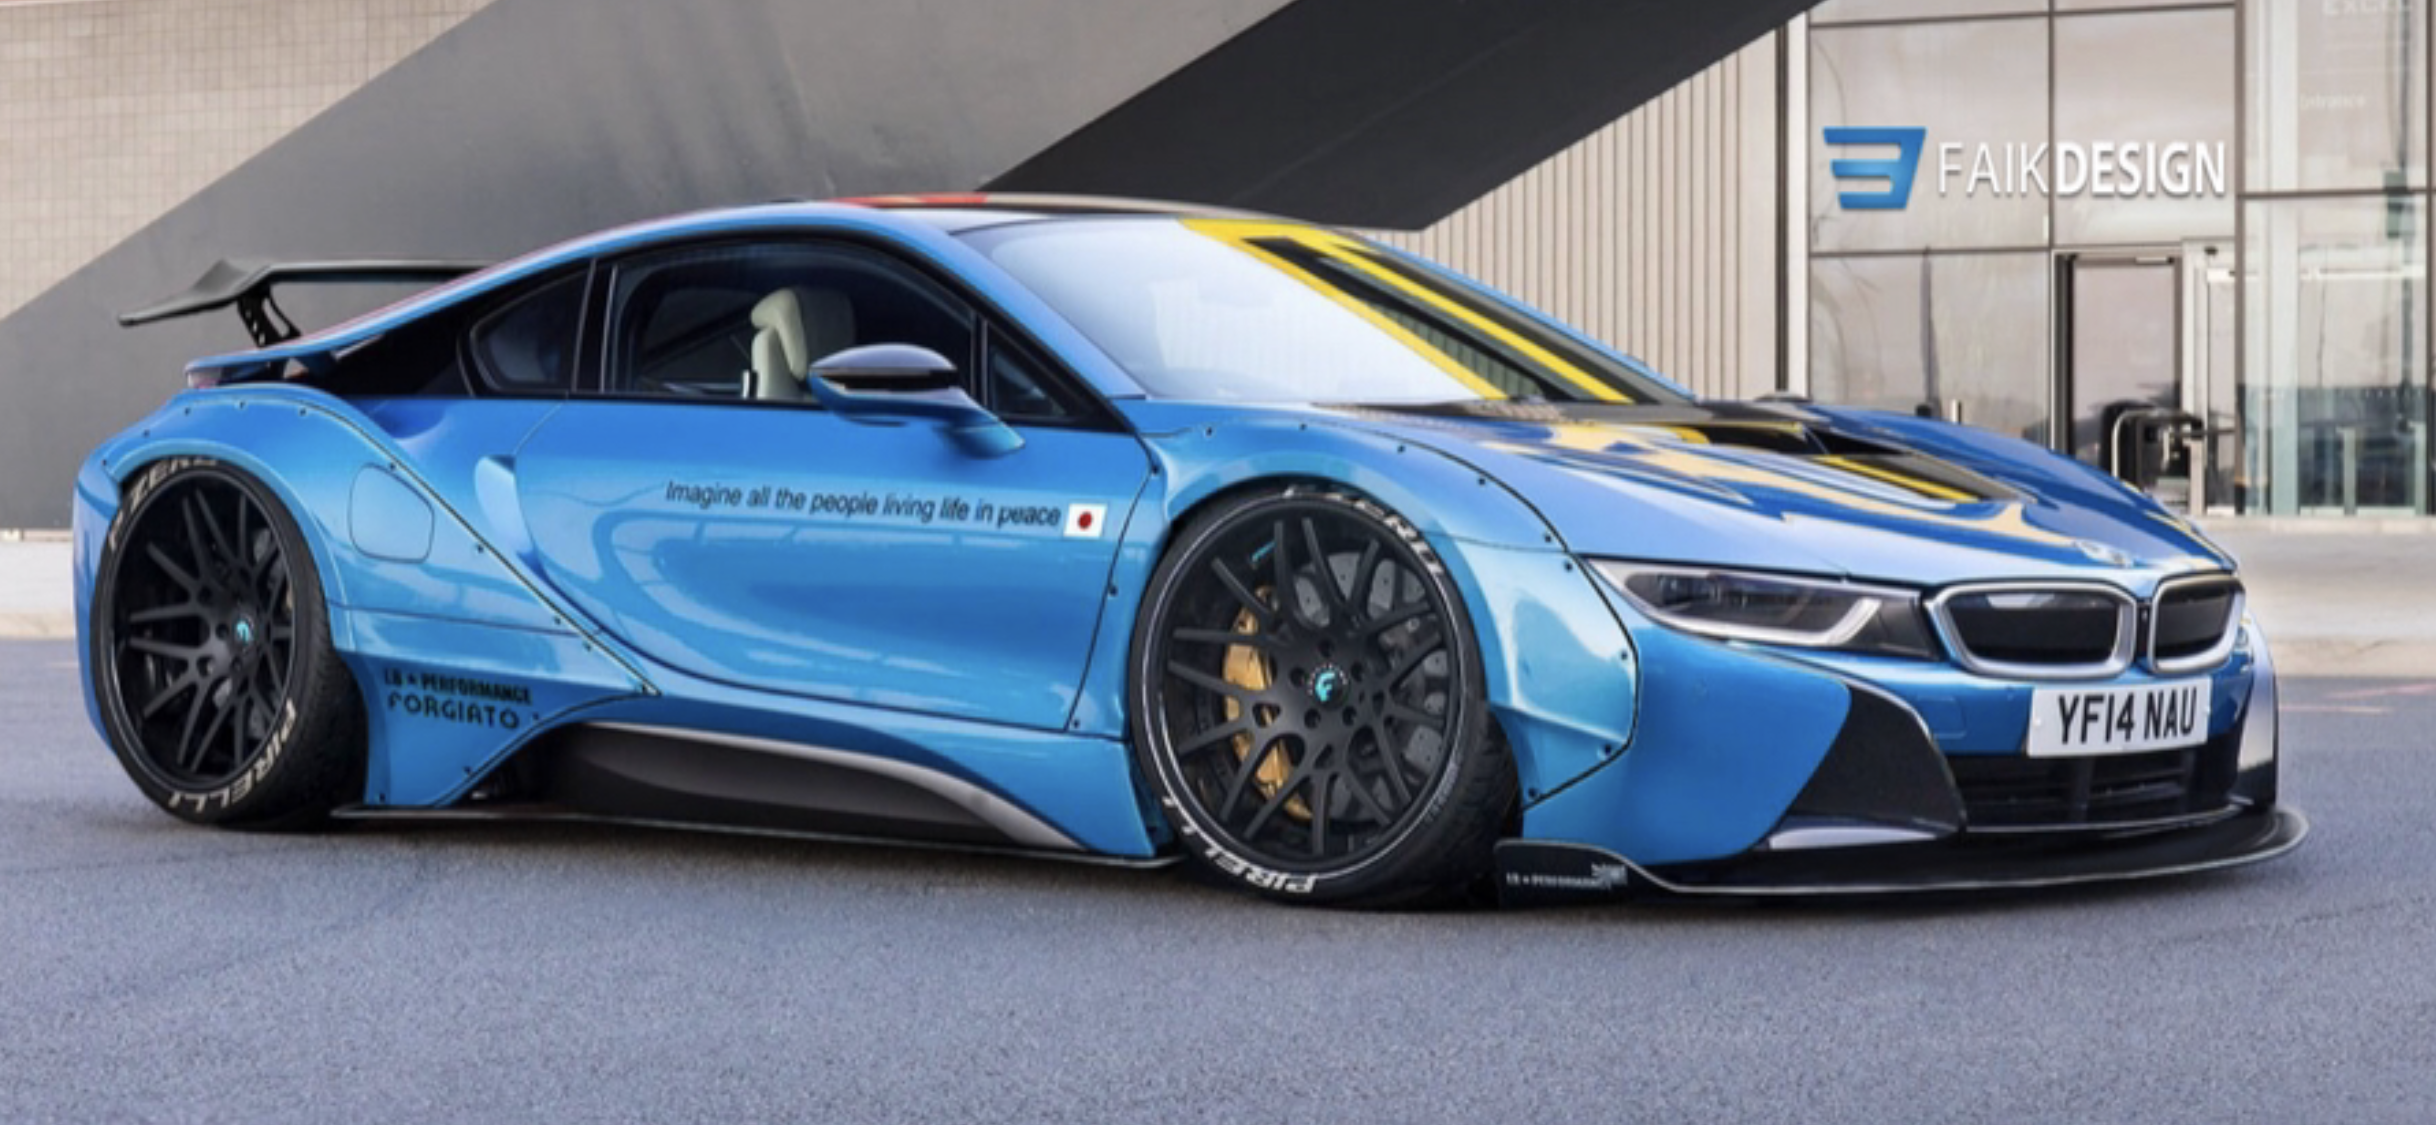 Pin by Del Corso on Bmw i8 Pinterest